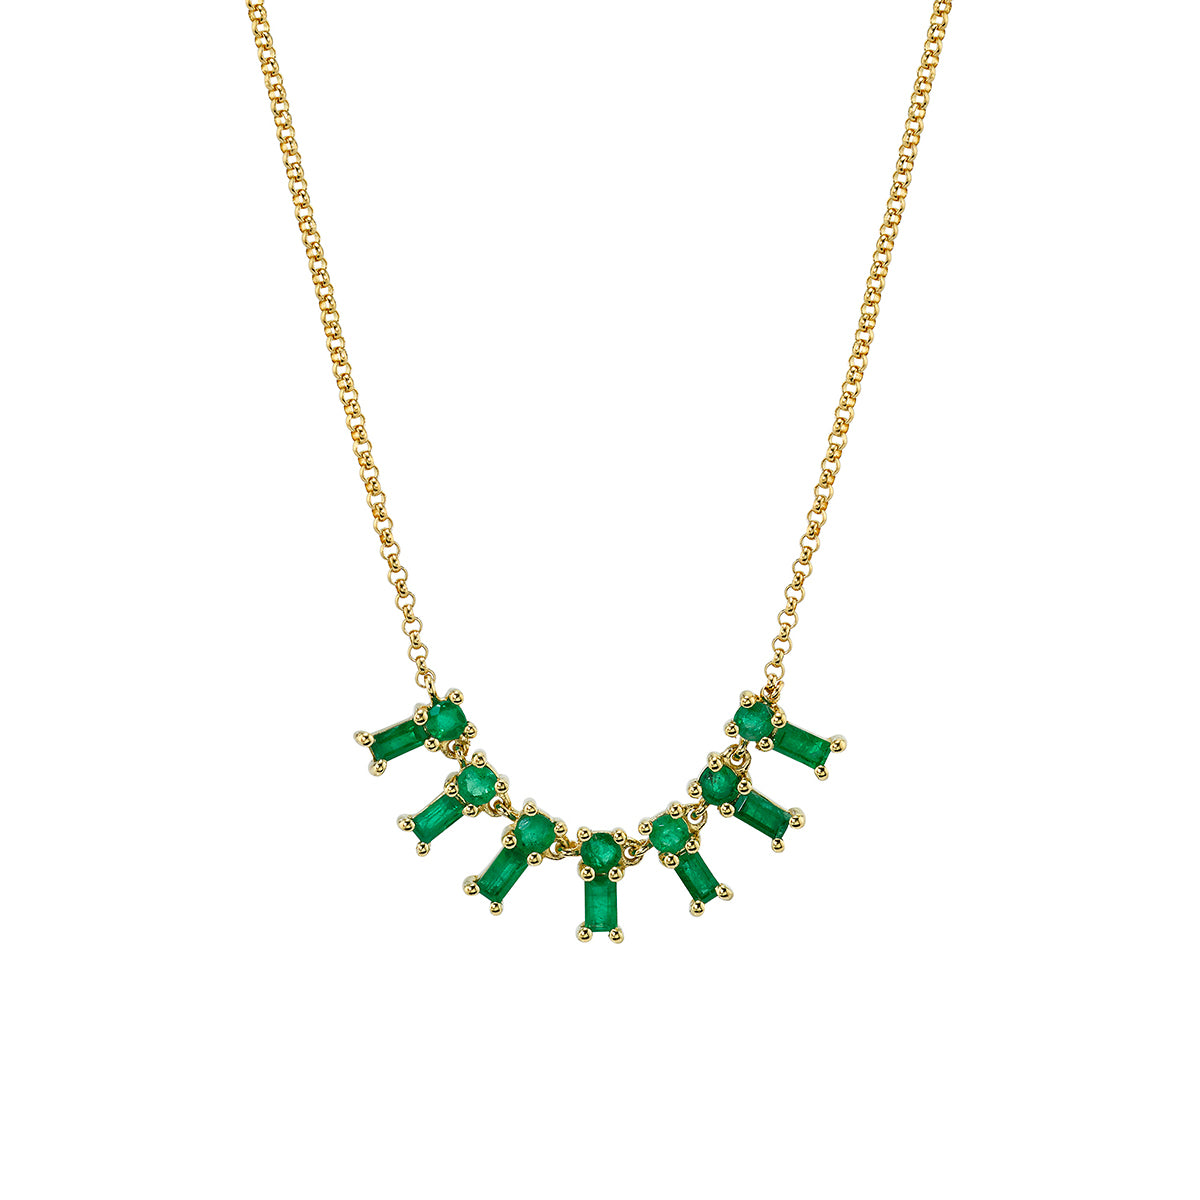 Emerald Dangle Necklace by Borgioni for Broken English Jewelry